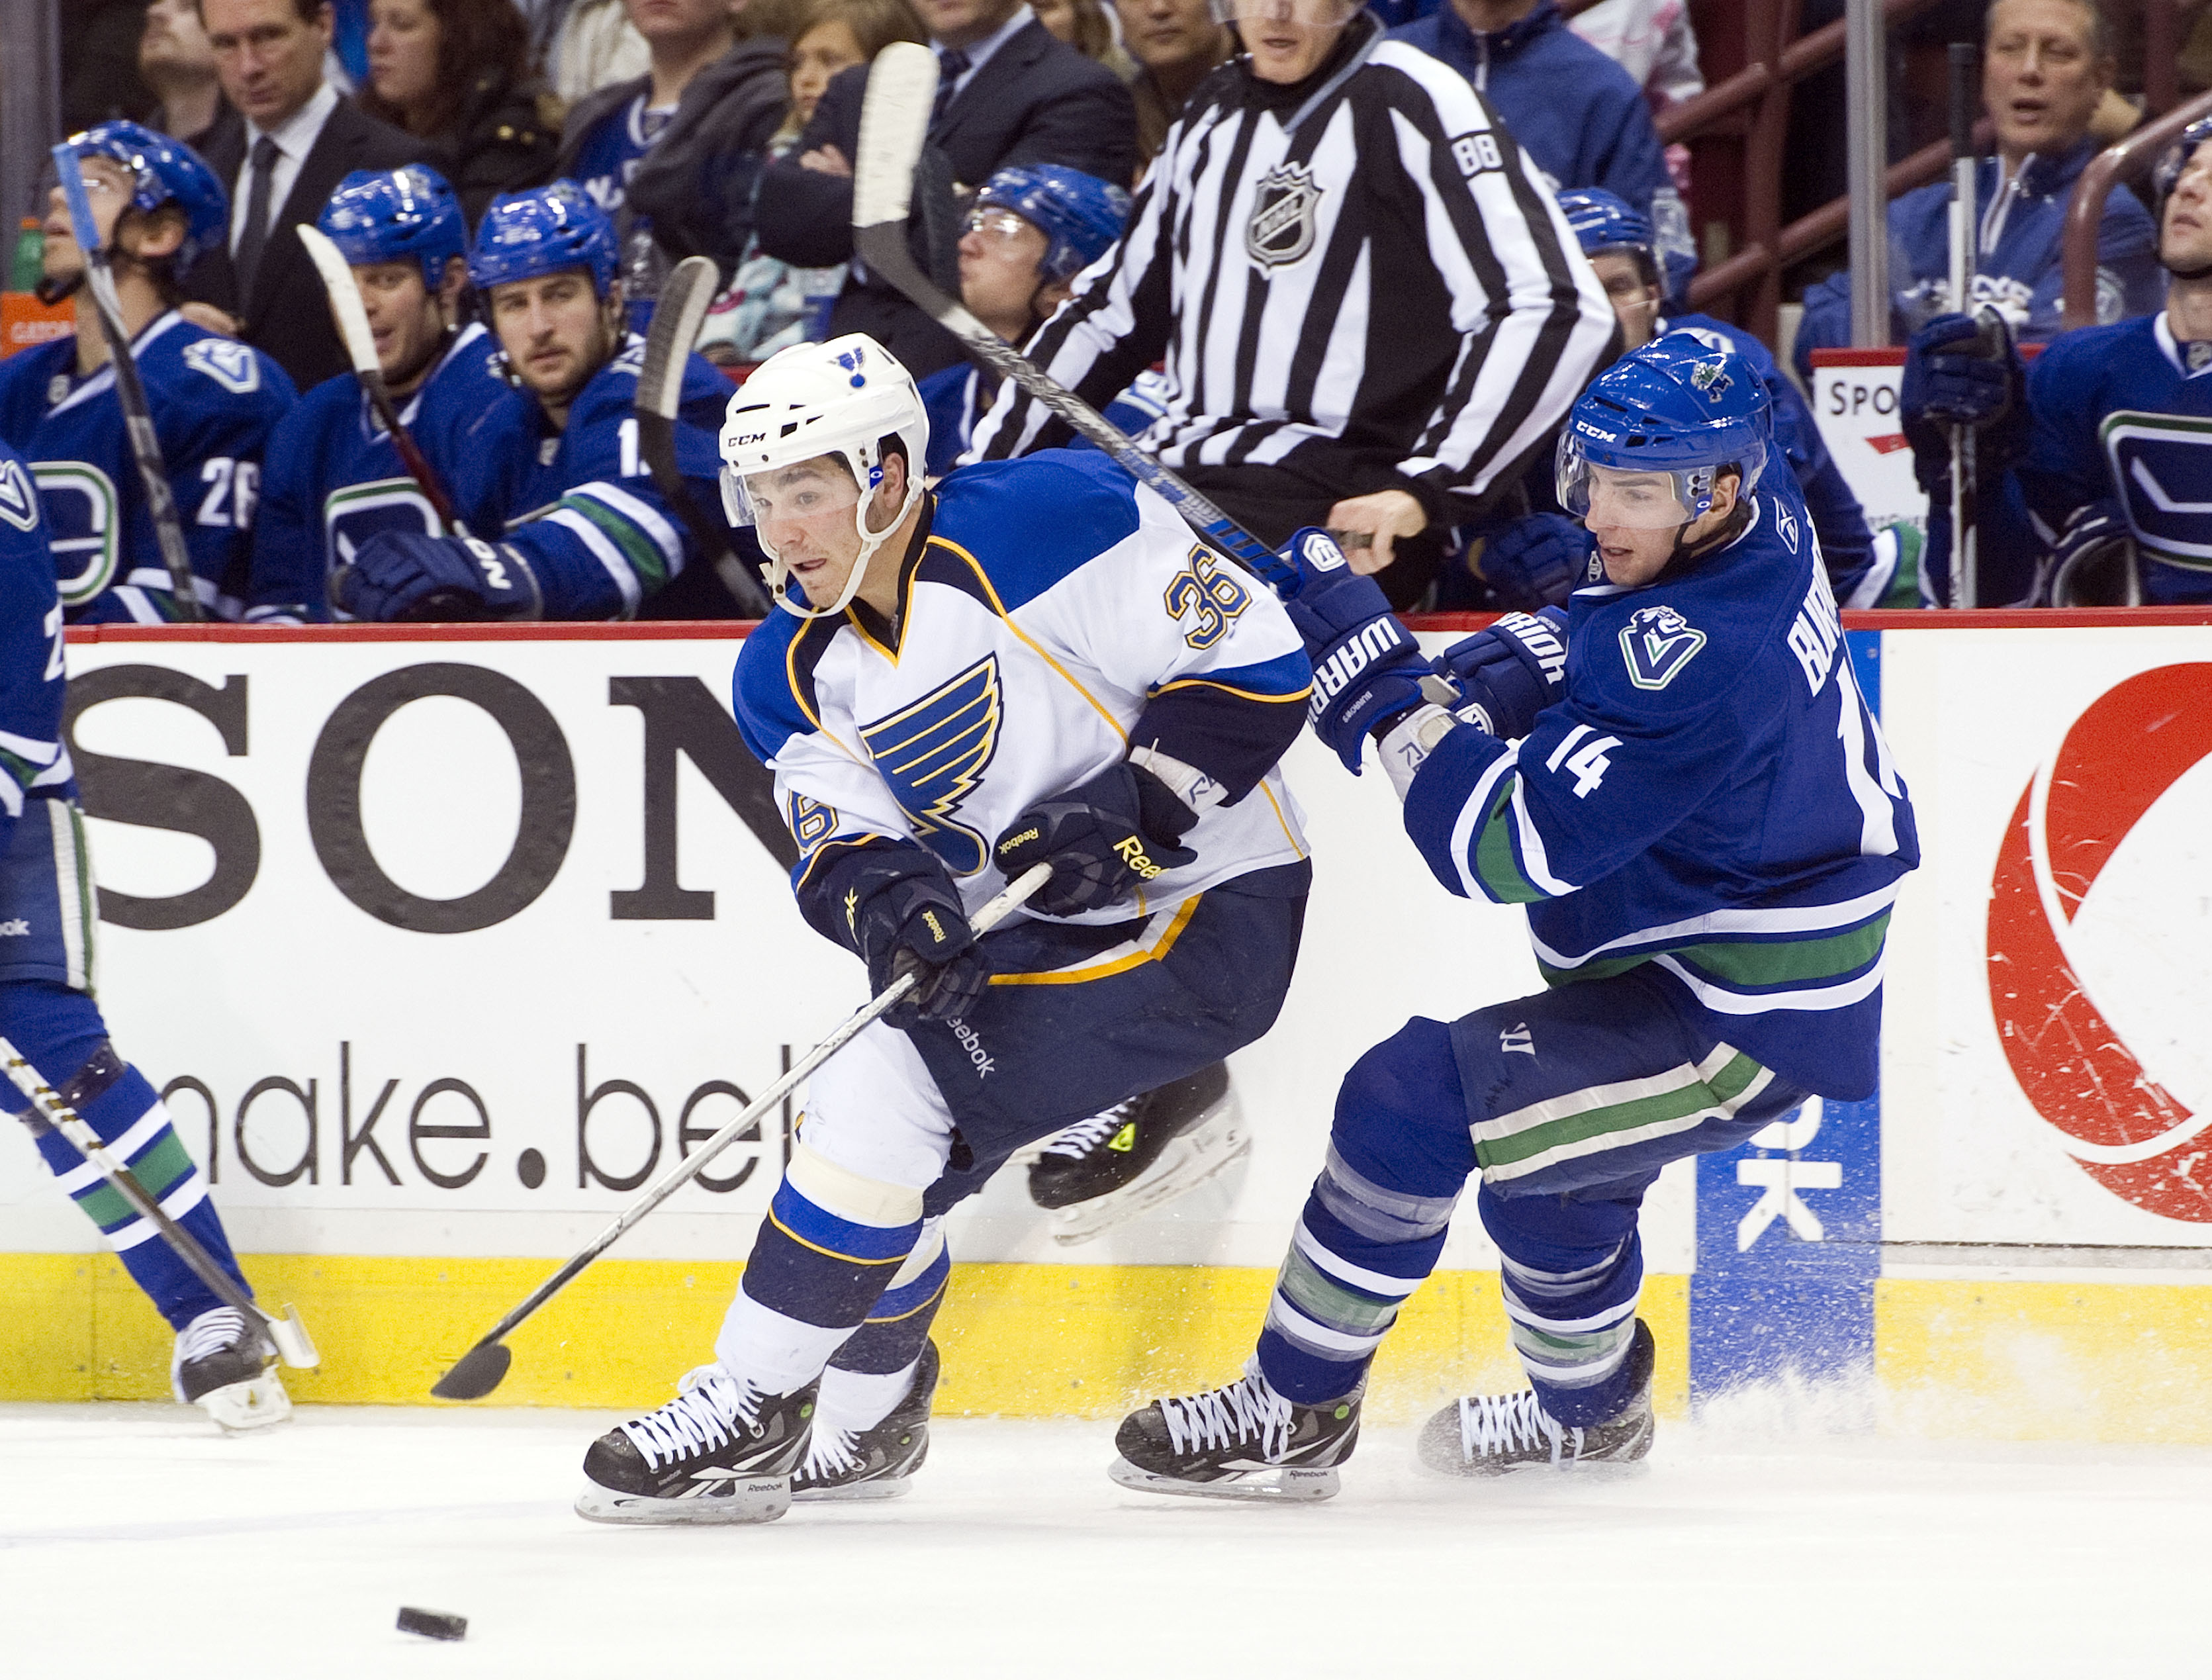 VANCOUVER, CANADA - DECEMBER 5: Alexandre Burrows #14 of the Vancouver Canucks checks Matt D'Agostini #36 of the St Louis Blues off the puck during the third period in NHL action on December 05, 2010 at Rogers Arena in Vancouver, BC, Canada.  (Photo by Ri